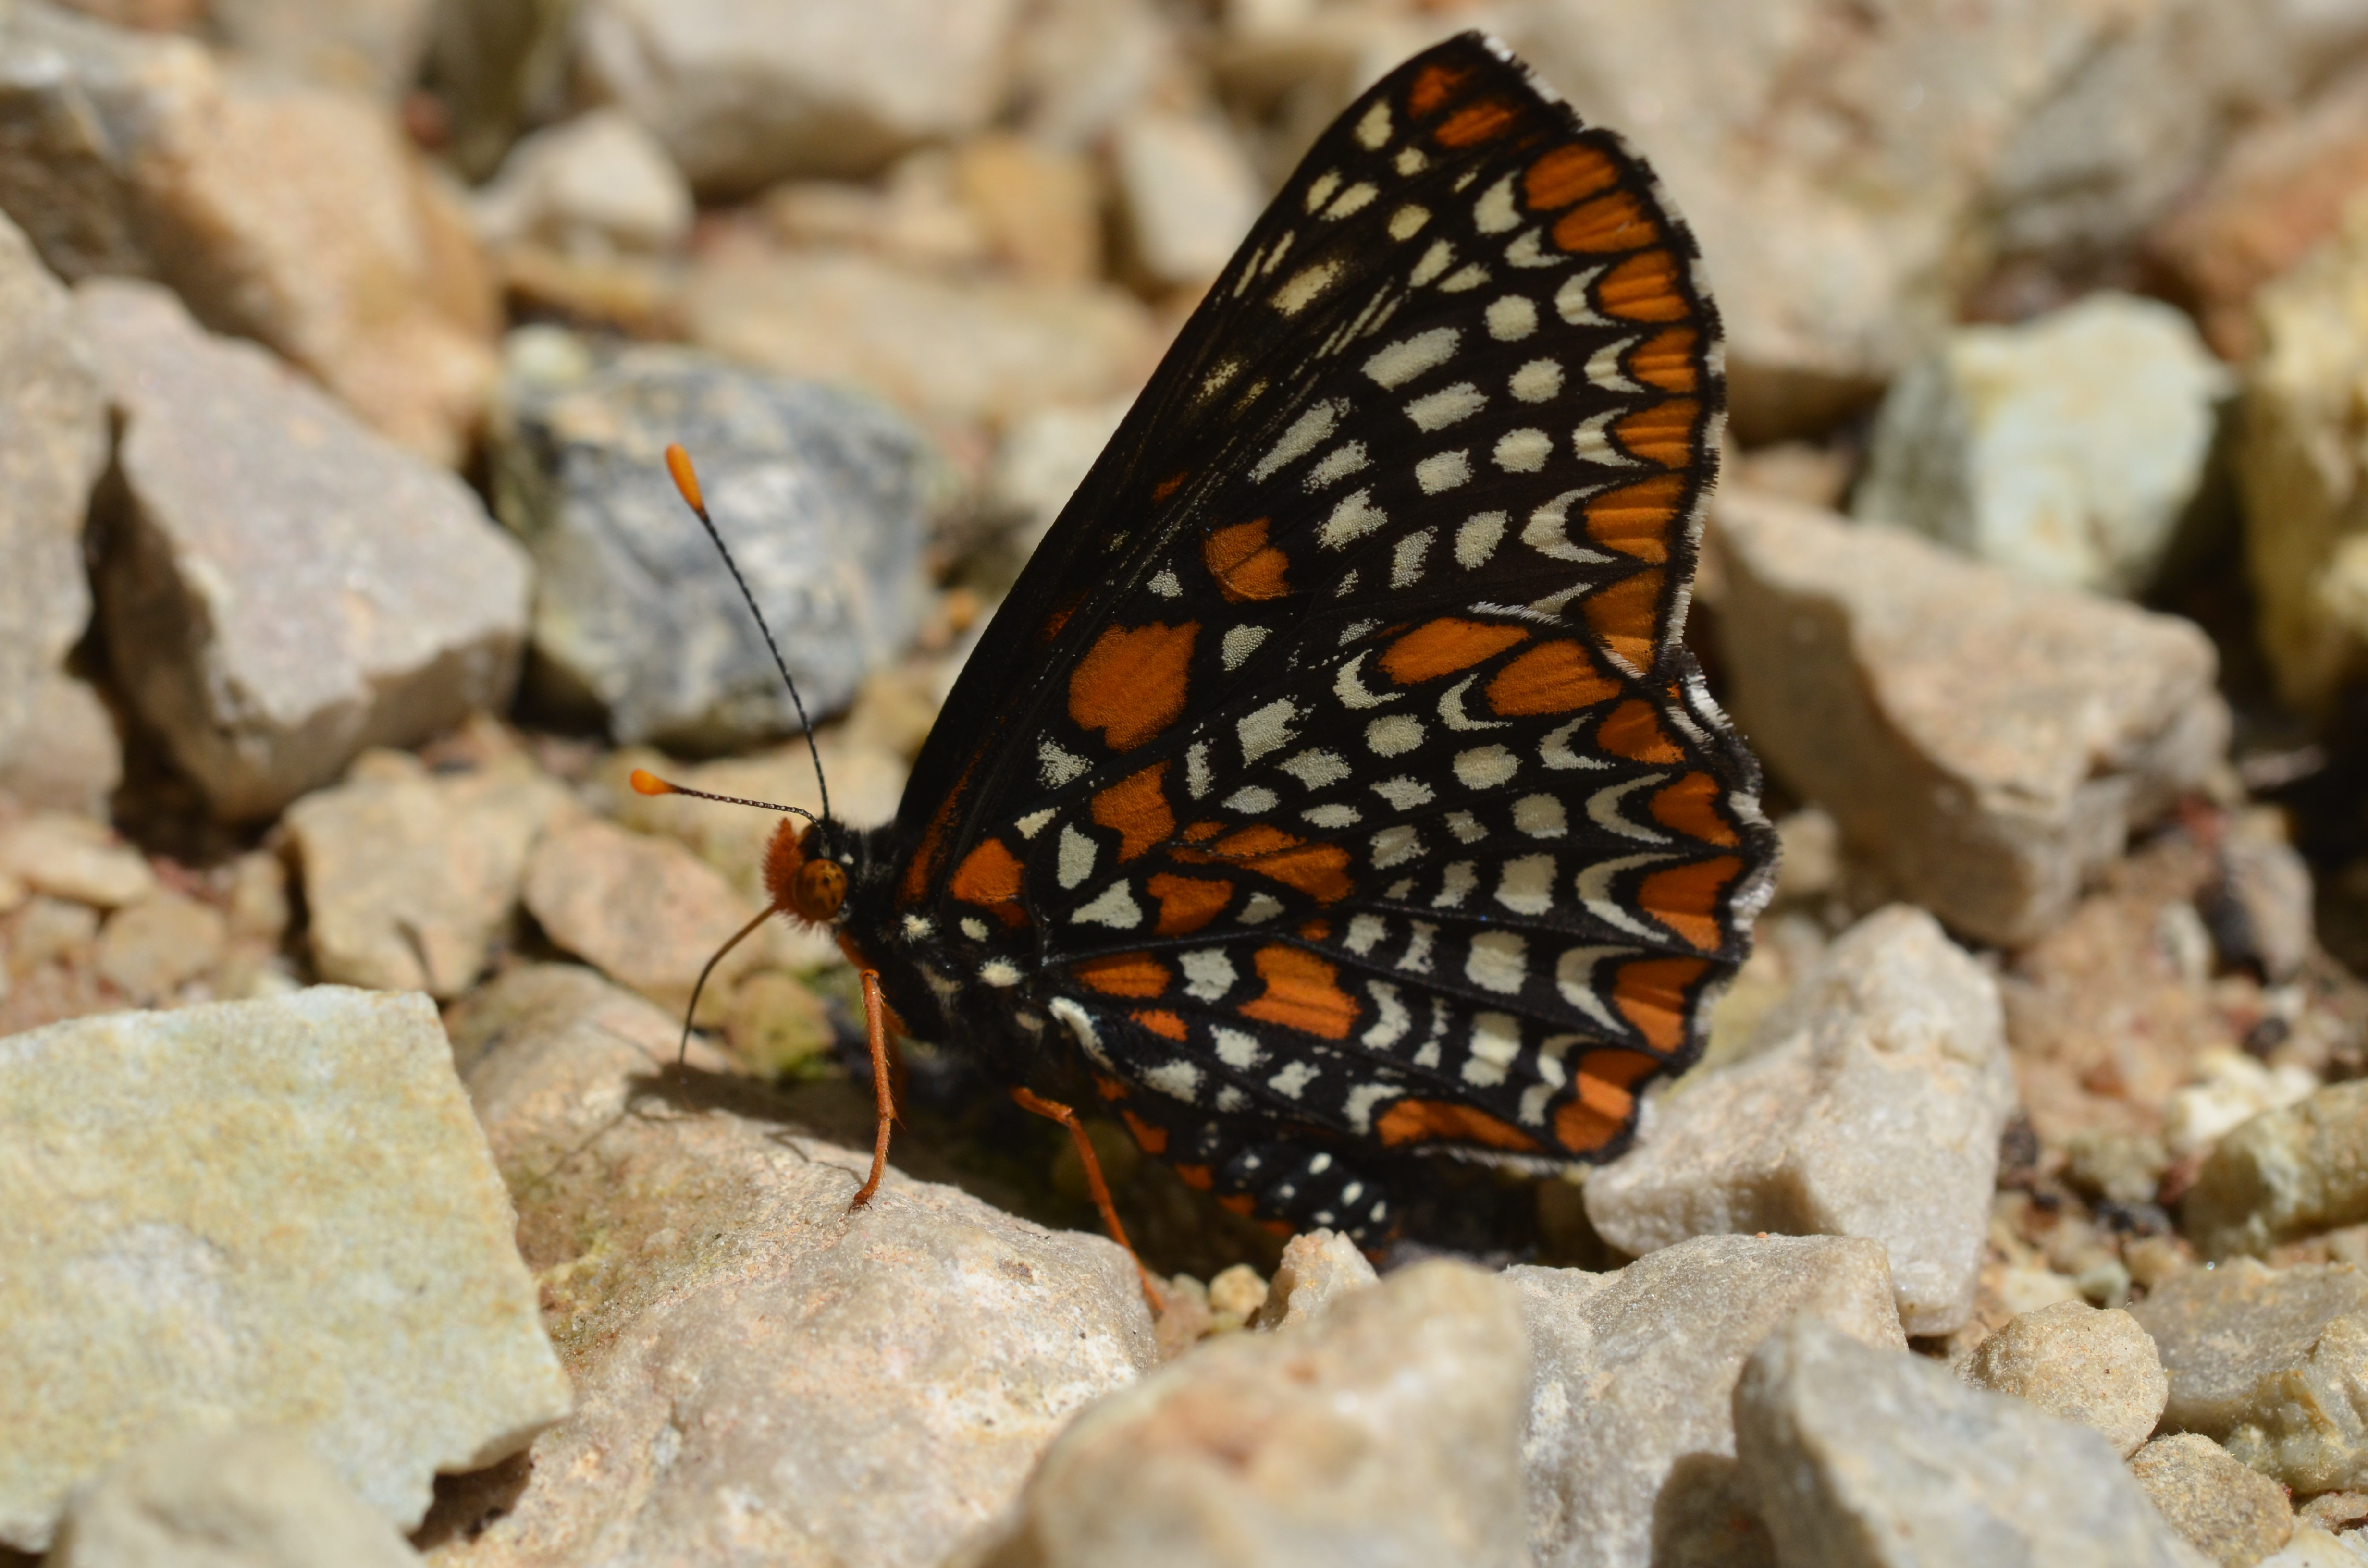 This Baltimore checkerspot butterfly while the butterfly has clubbed antenna and is holding its wings upright.